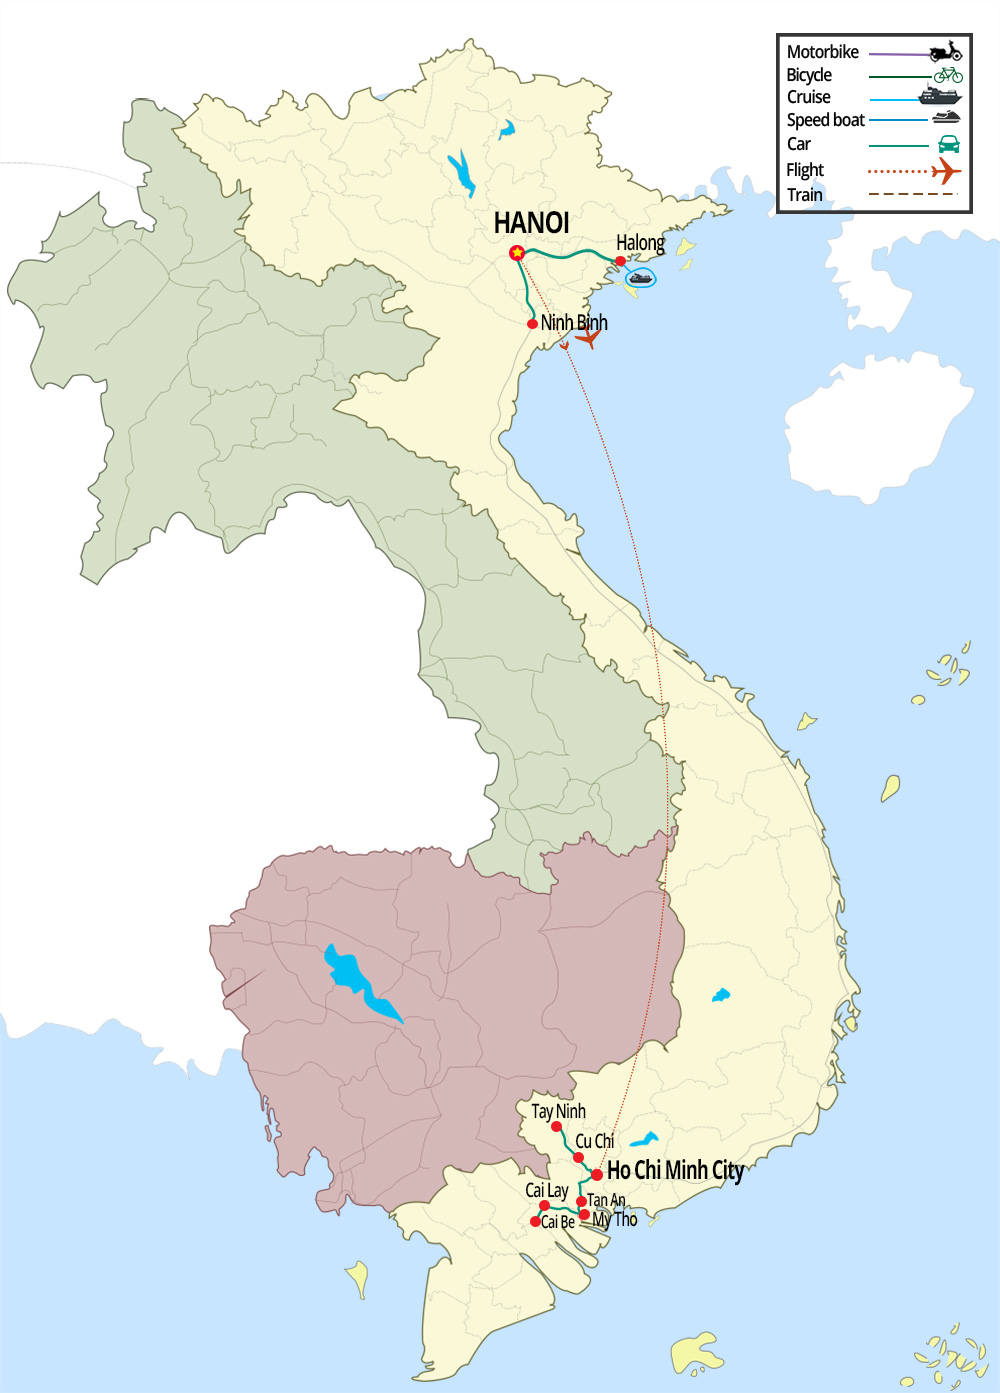 premier-discovery-the-north-and-south-vietnam-classic-tour.jpg